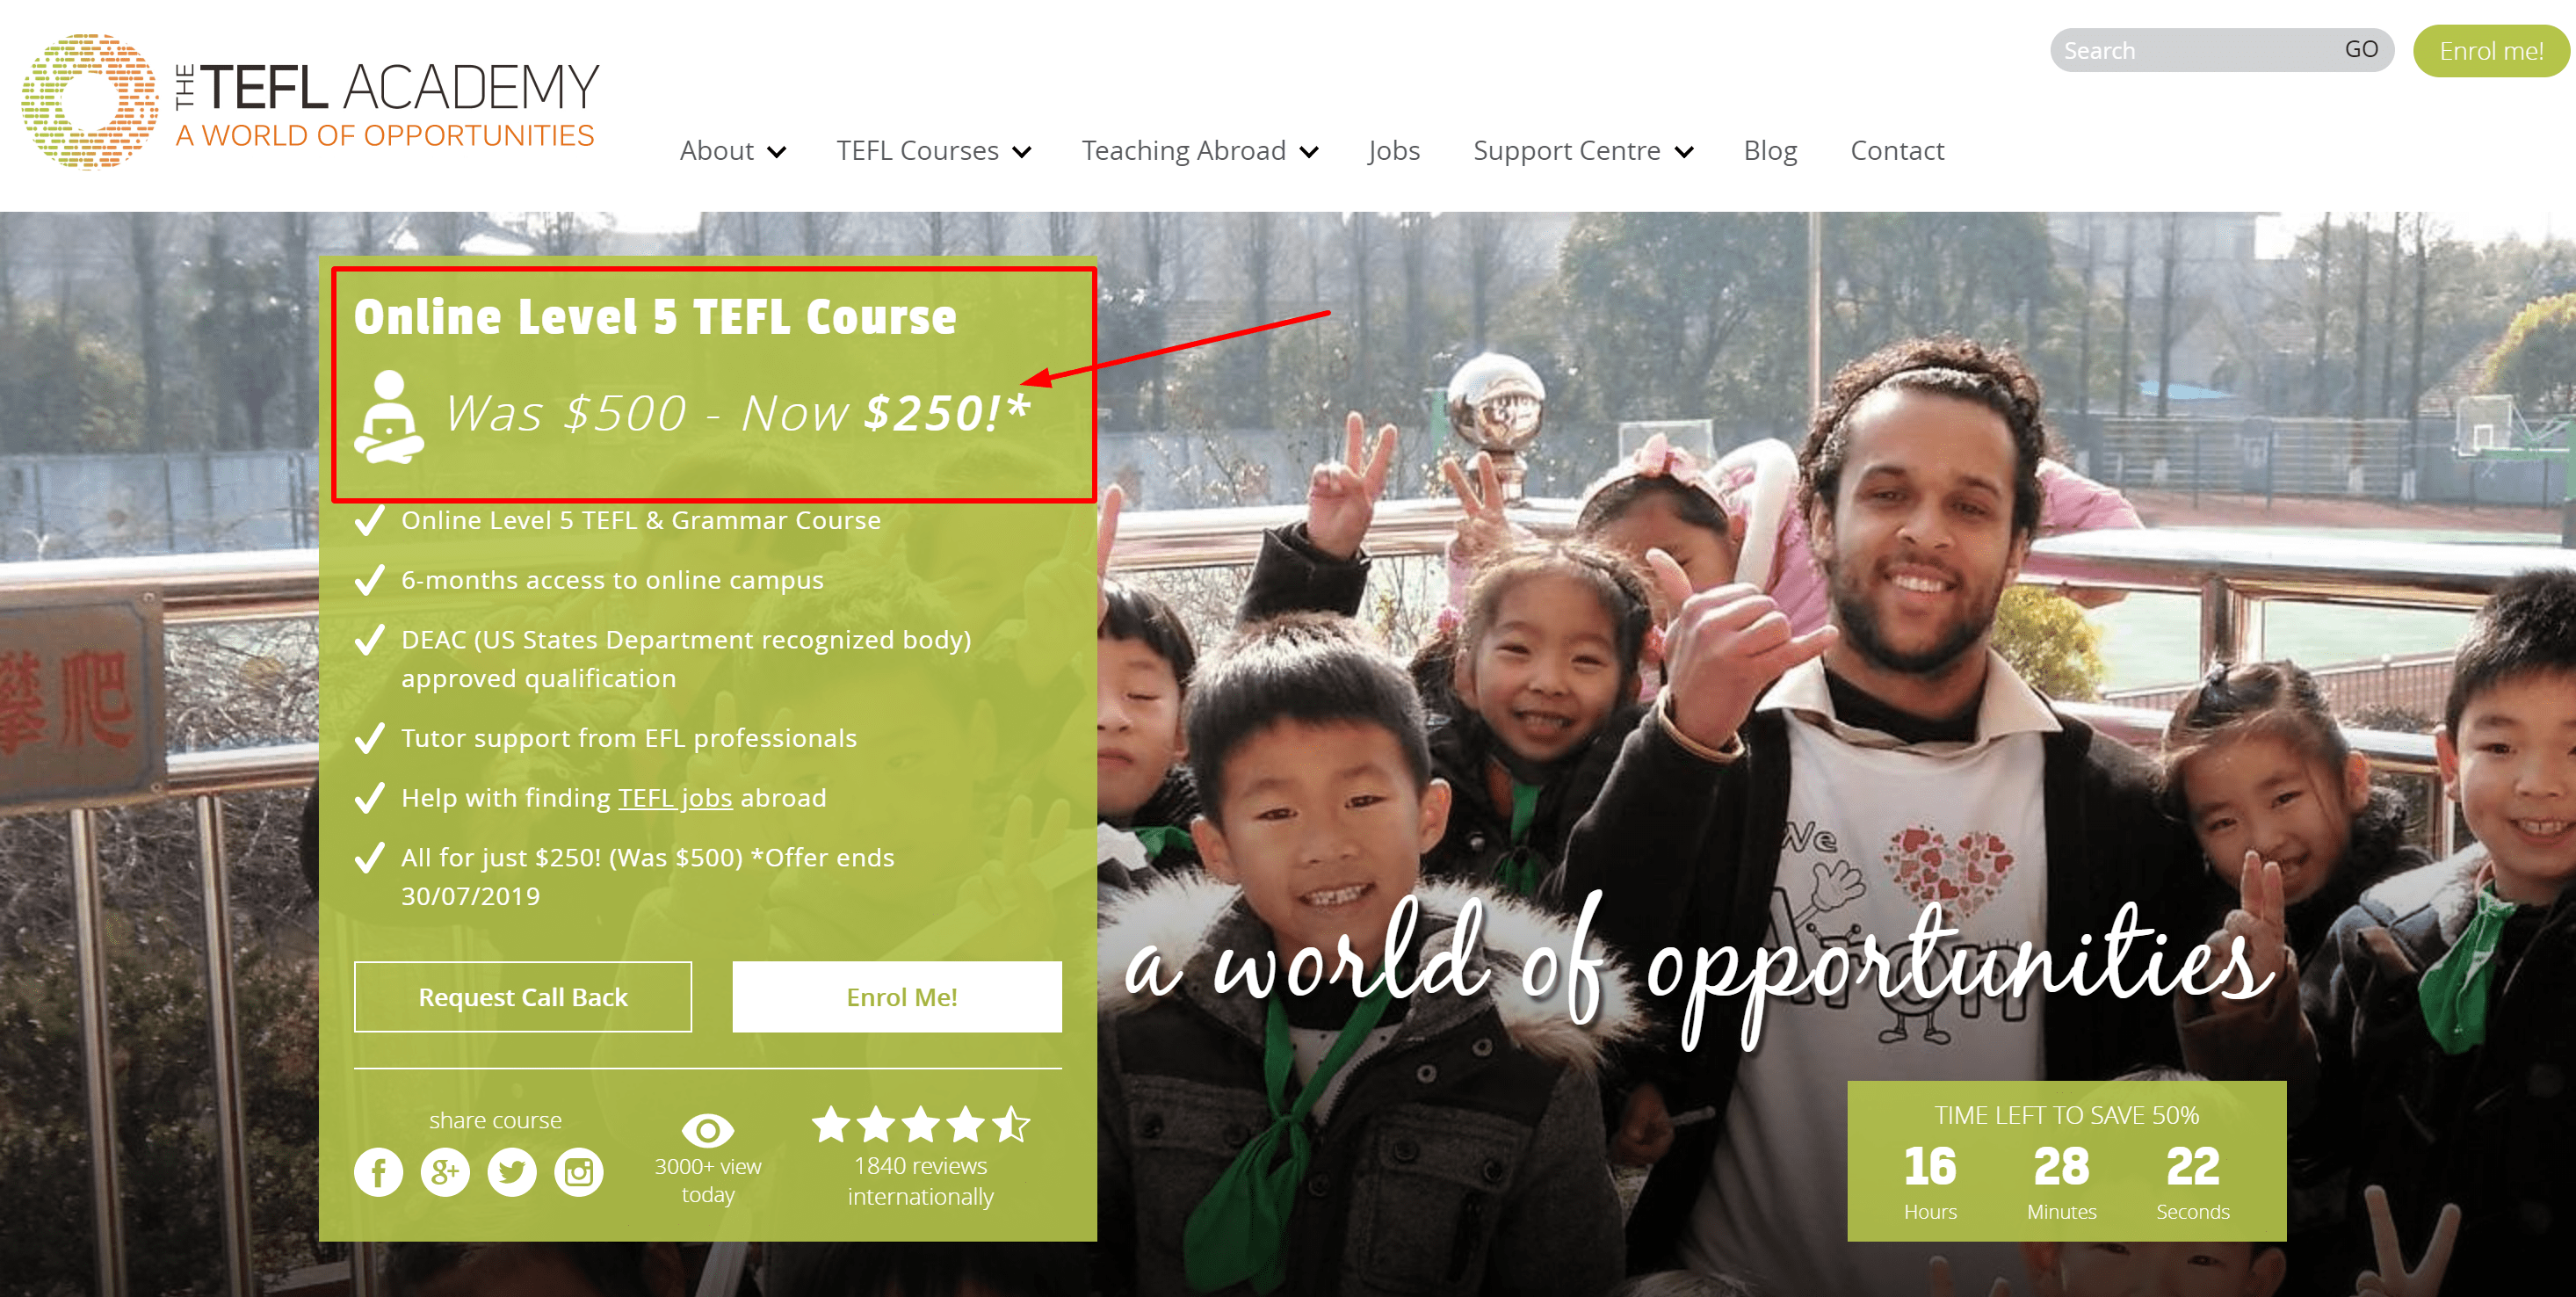 The TEFL Academy Review